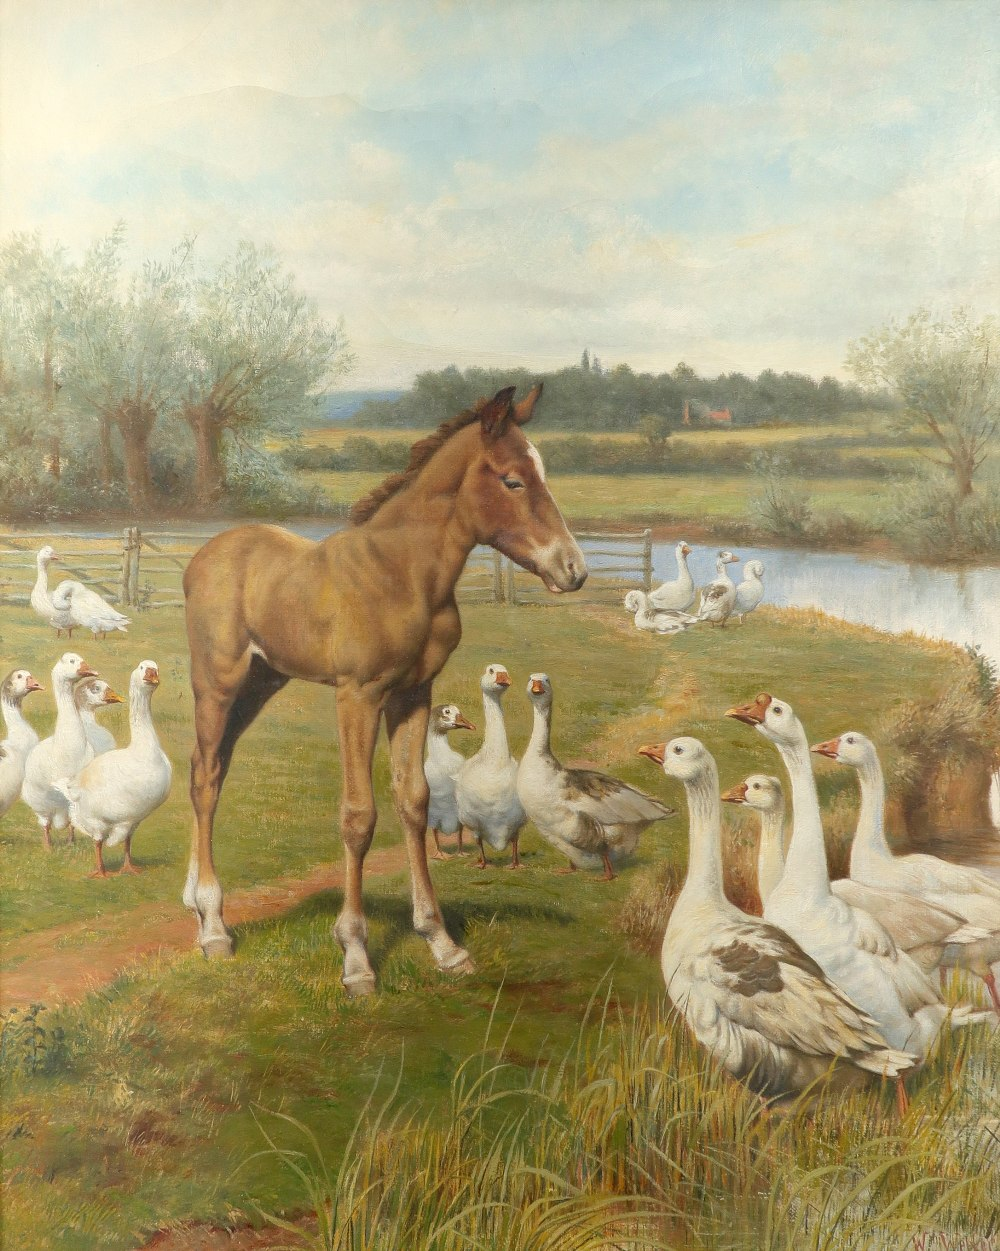 Herbert William Weekes (1841-1914) A mutual admiration Signed W Weekes (lower right) Oil on canvas